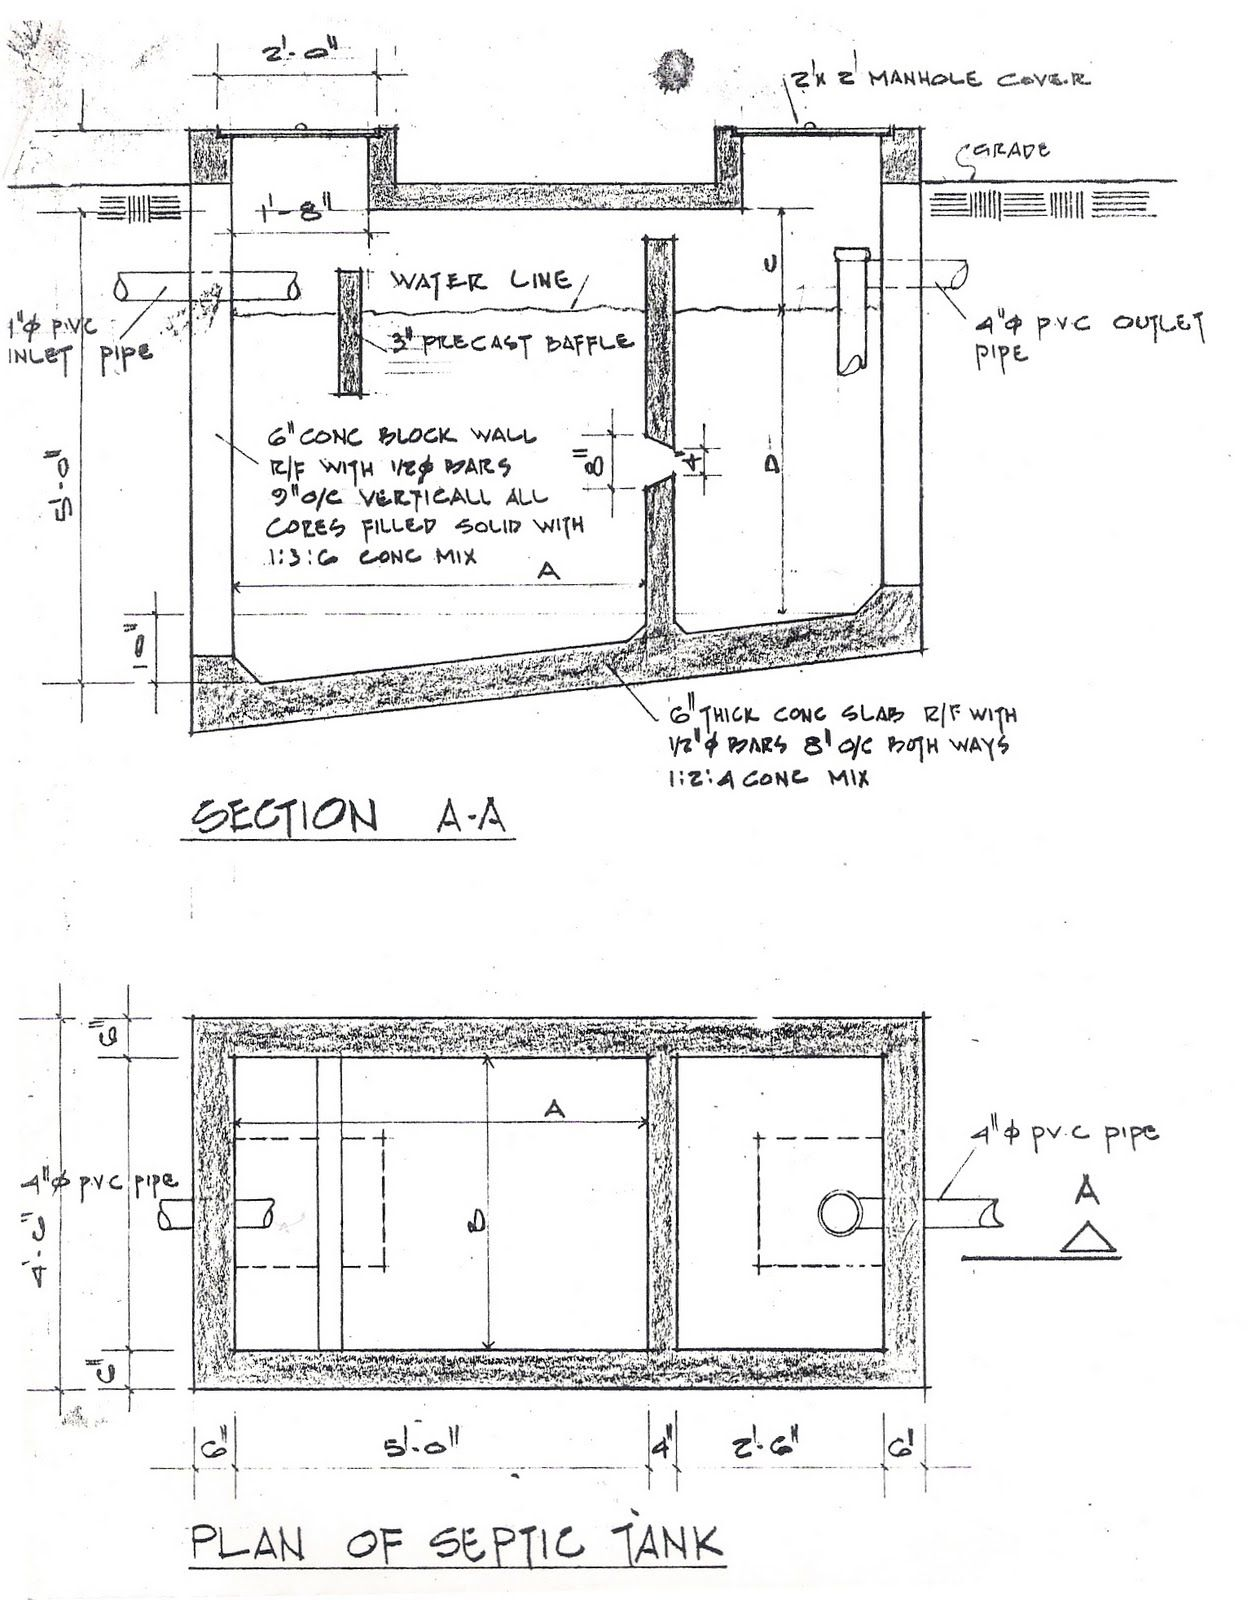 Septic Tank Design Example 98 With Septic Tank Design Example Cm Septic Tank Design Septic Tank Septic Tank Systems